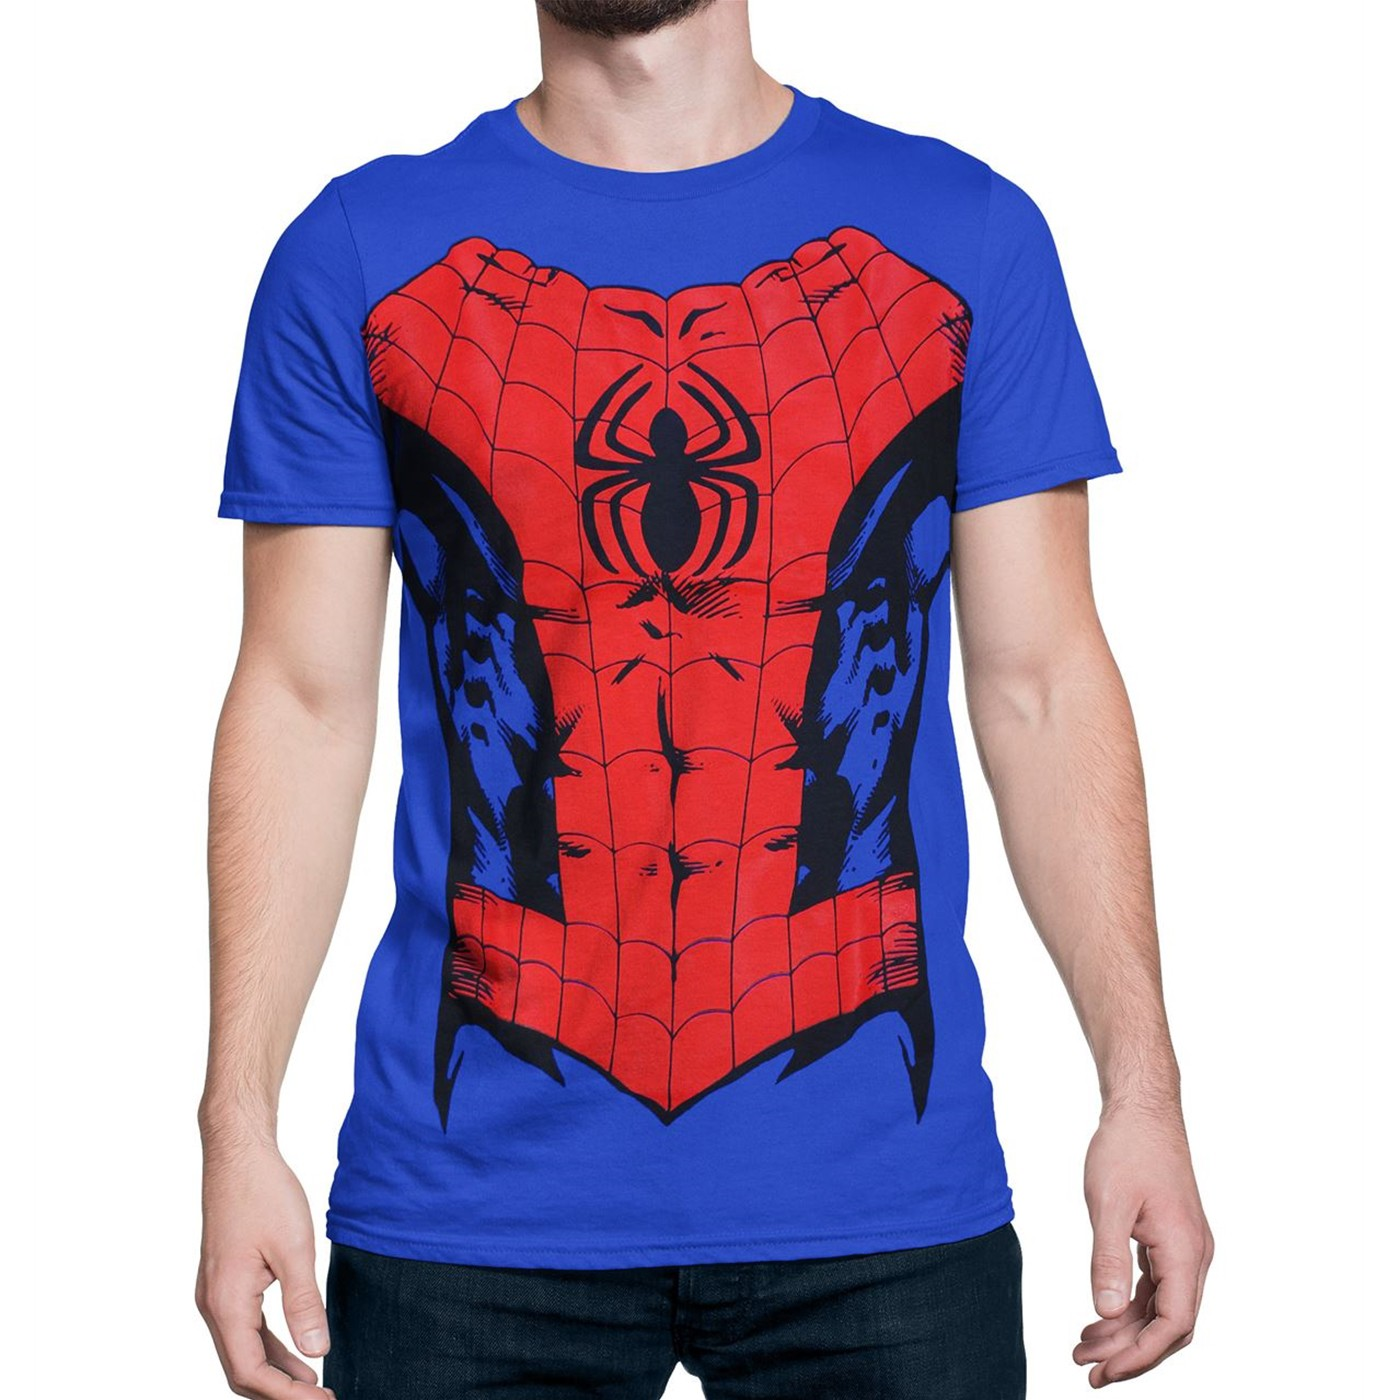 Spider-Man Suit-Up Men's Costume T-Shirt